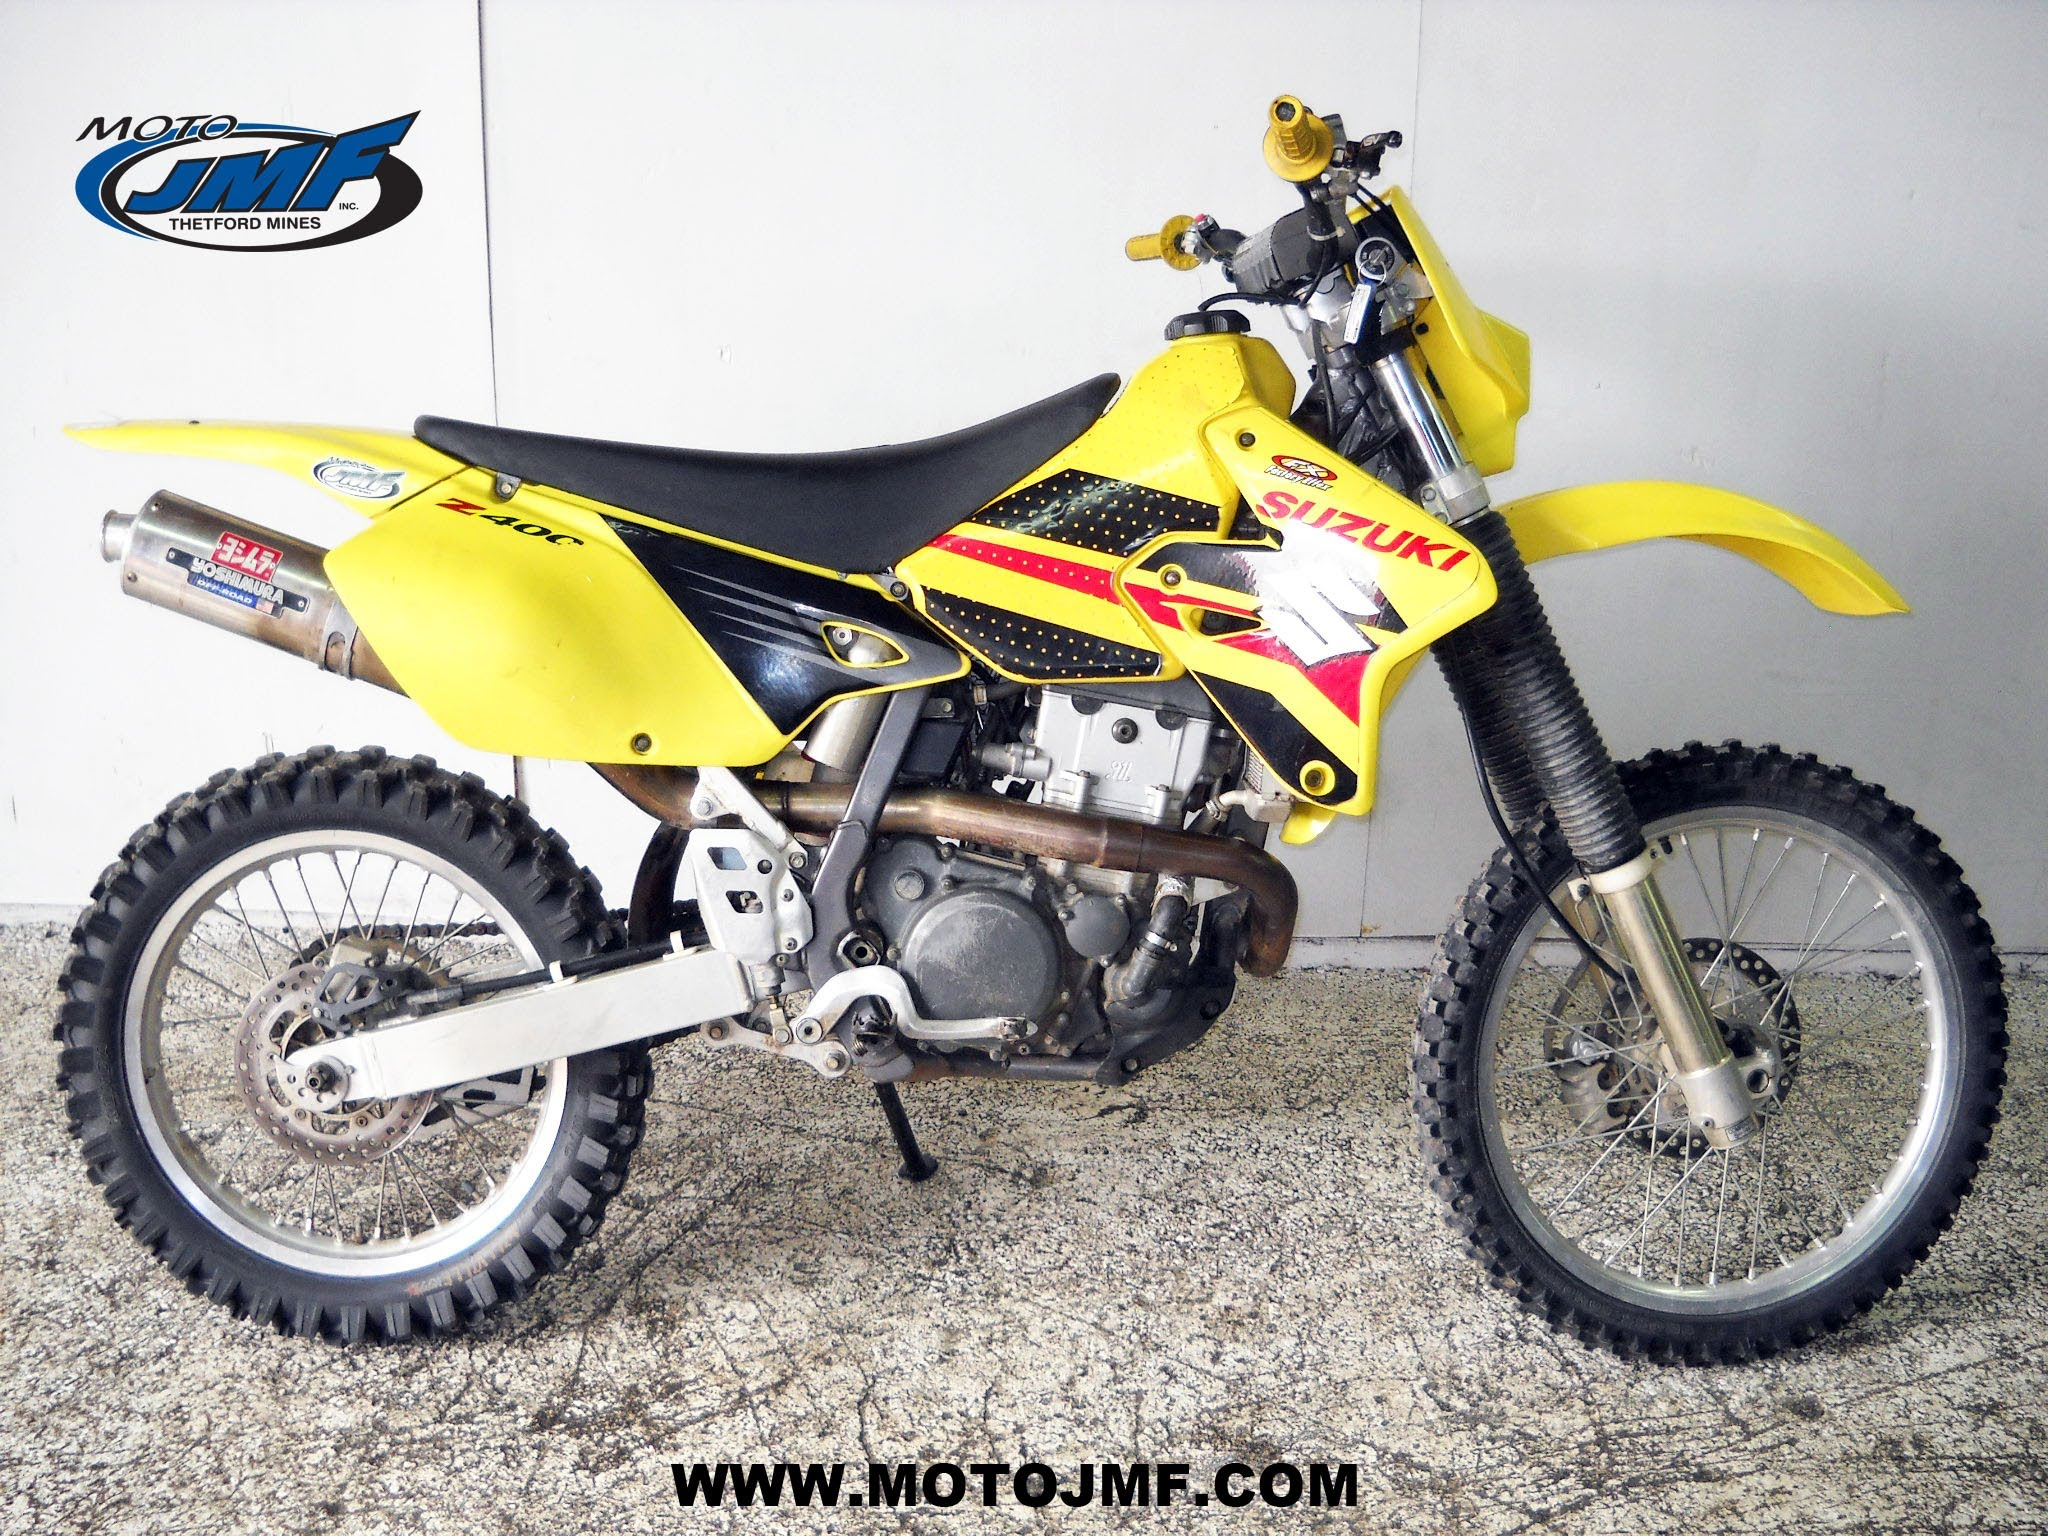 Suzuki DR-Z 400 S: pics, specs and list of seriess by year